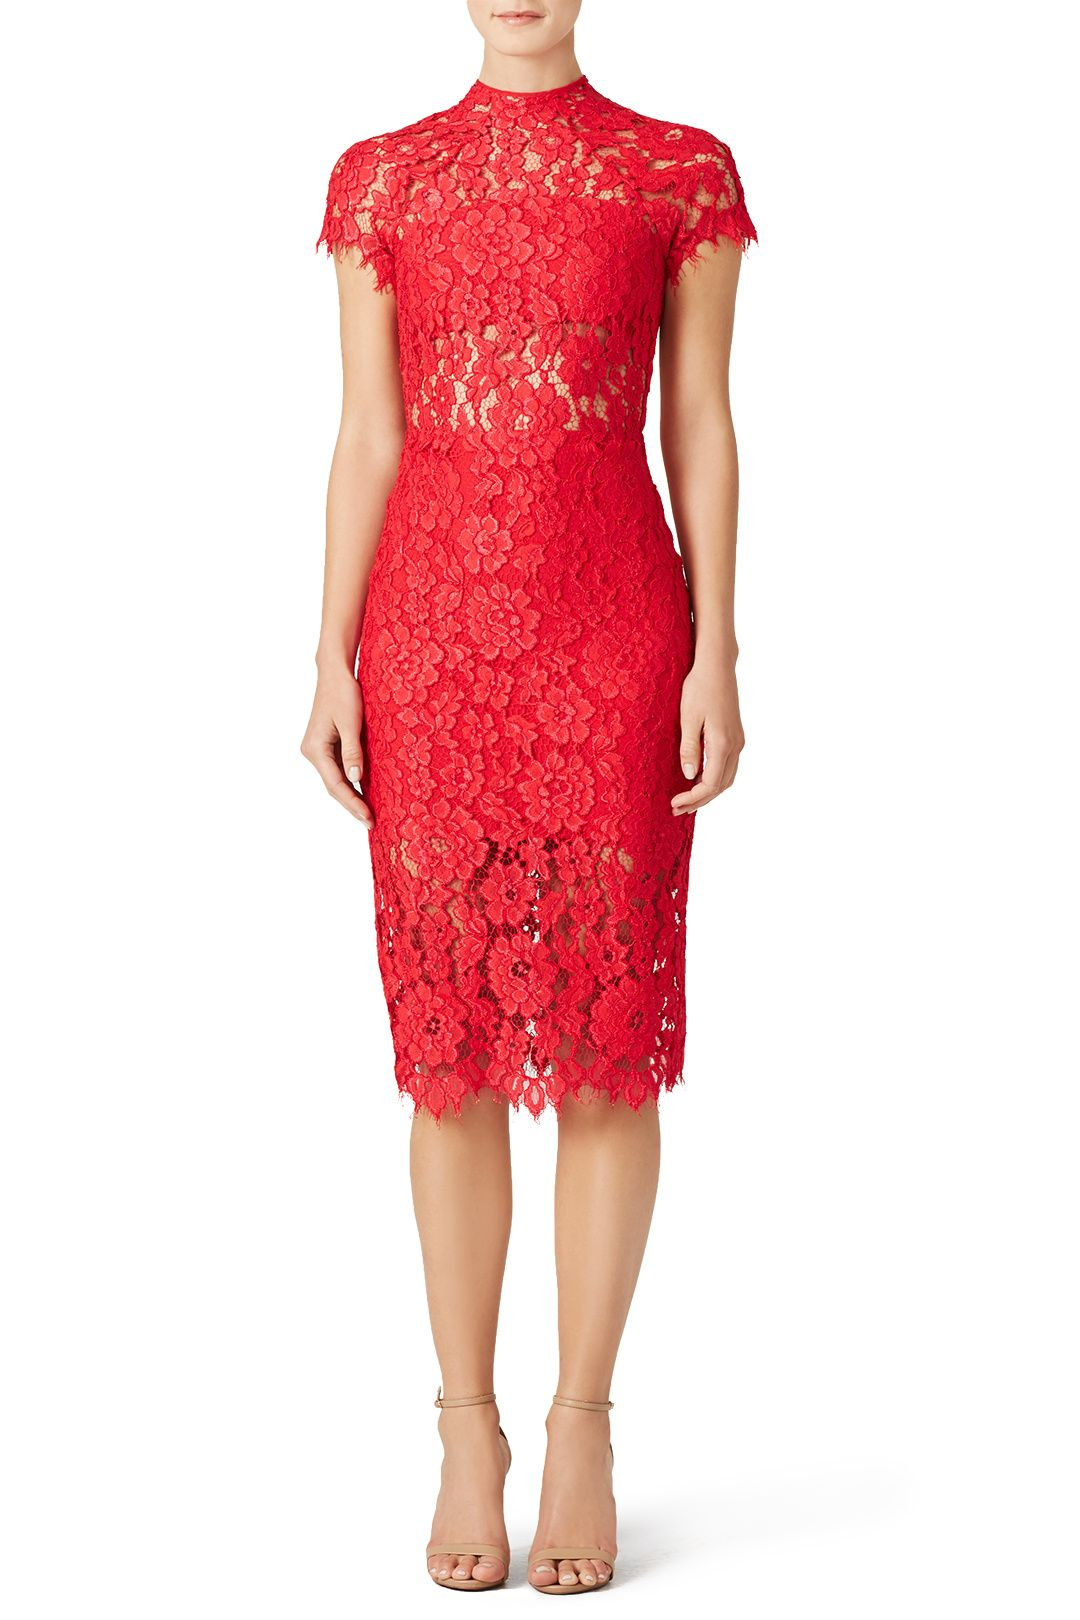 d4c03747d79 Red lace cap sleeve dress with sheer panels. Perfect for a summer rehearsal  dinner! Alexis Red Leona Dress